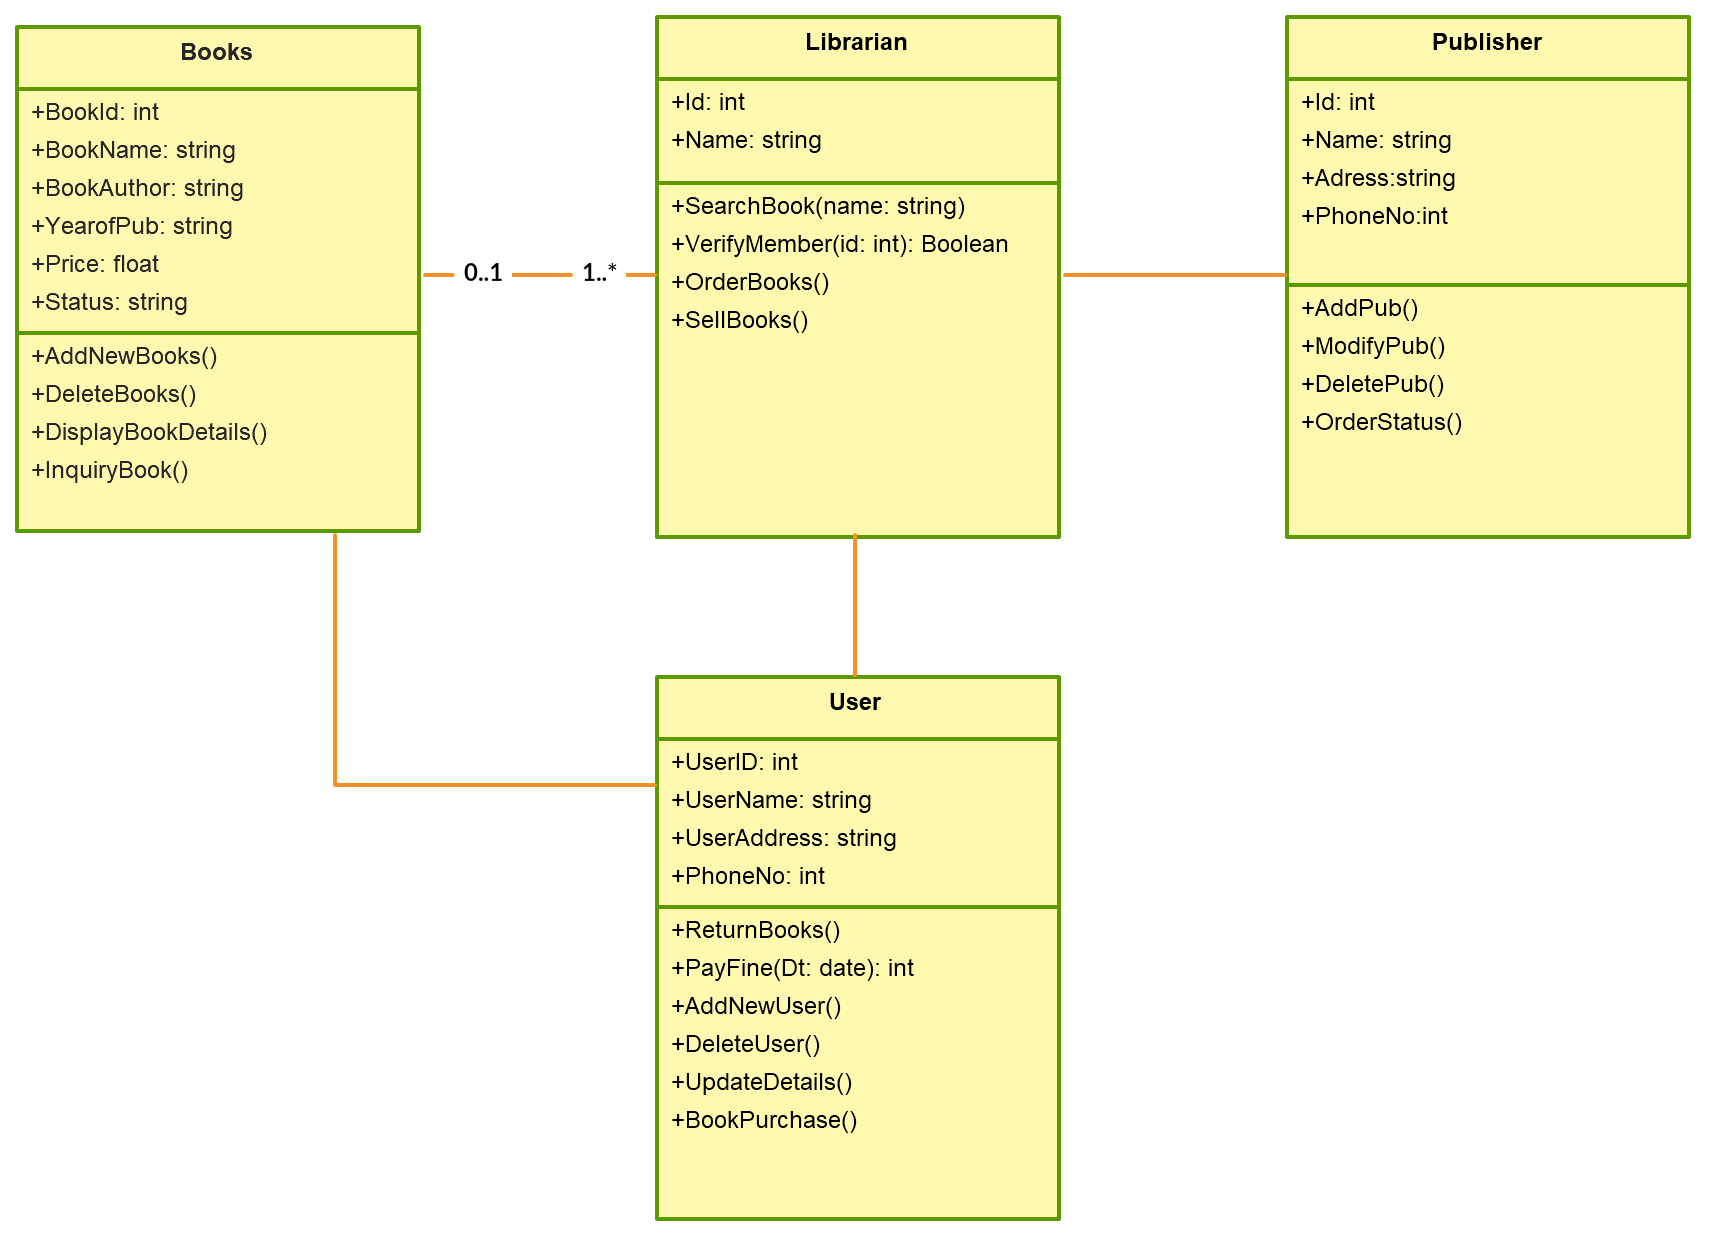 Uml Class Diagram For Library Management System This Sparxsystems Europe Reading Sample Project Development With And Describes The Structure Of By Showing Systems Classes Their Attributes